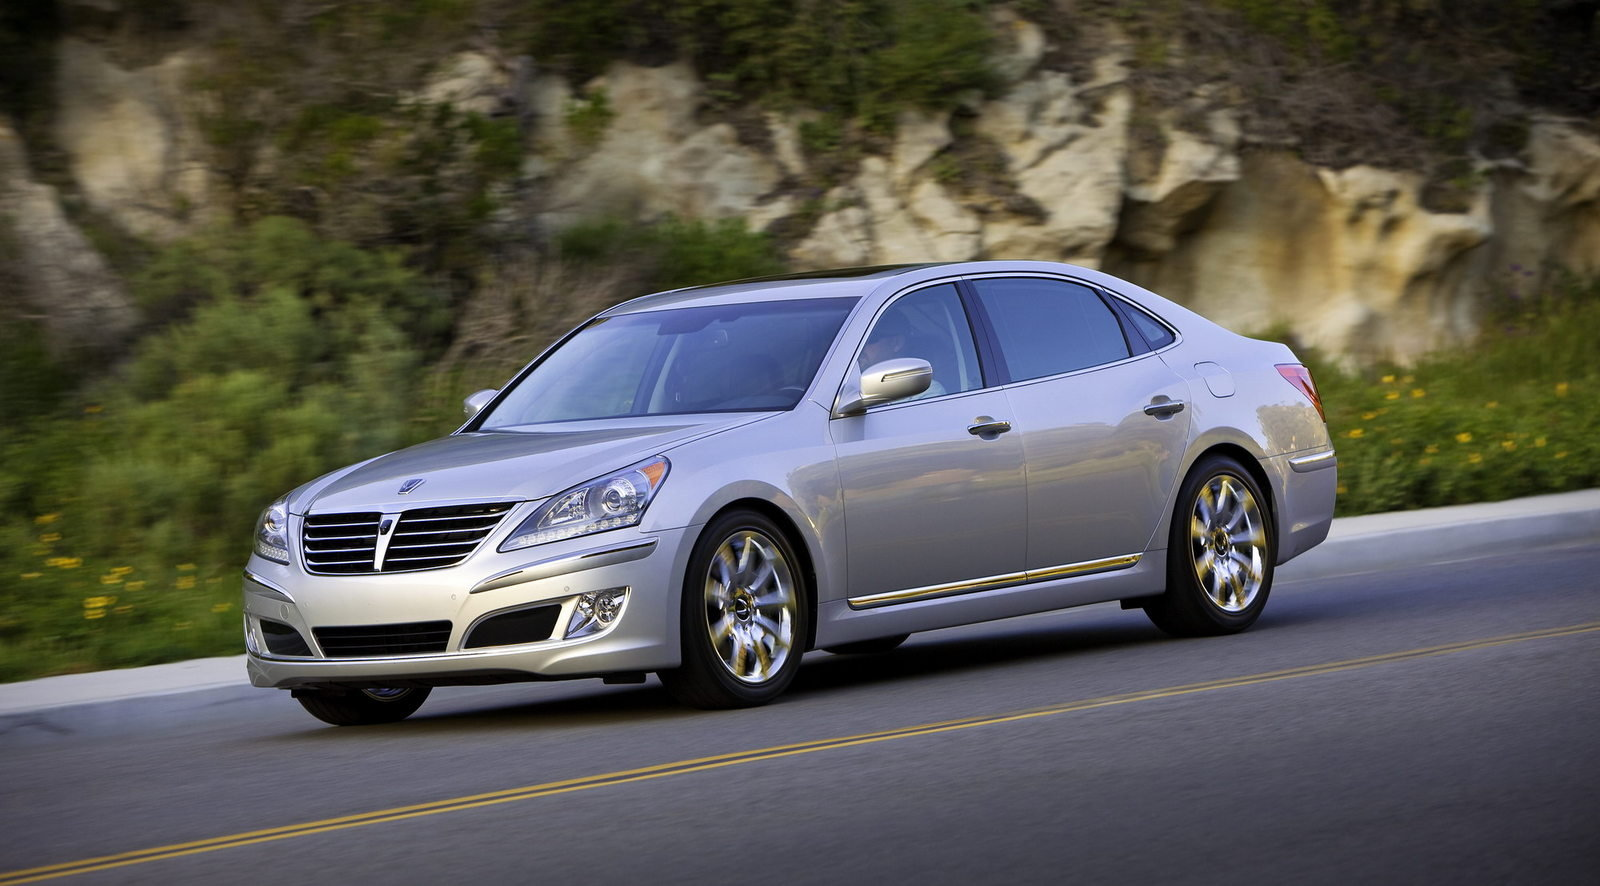 2011 Hyundai Equus Top Speed